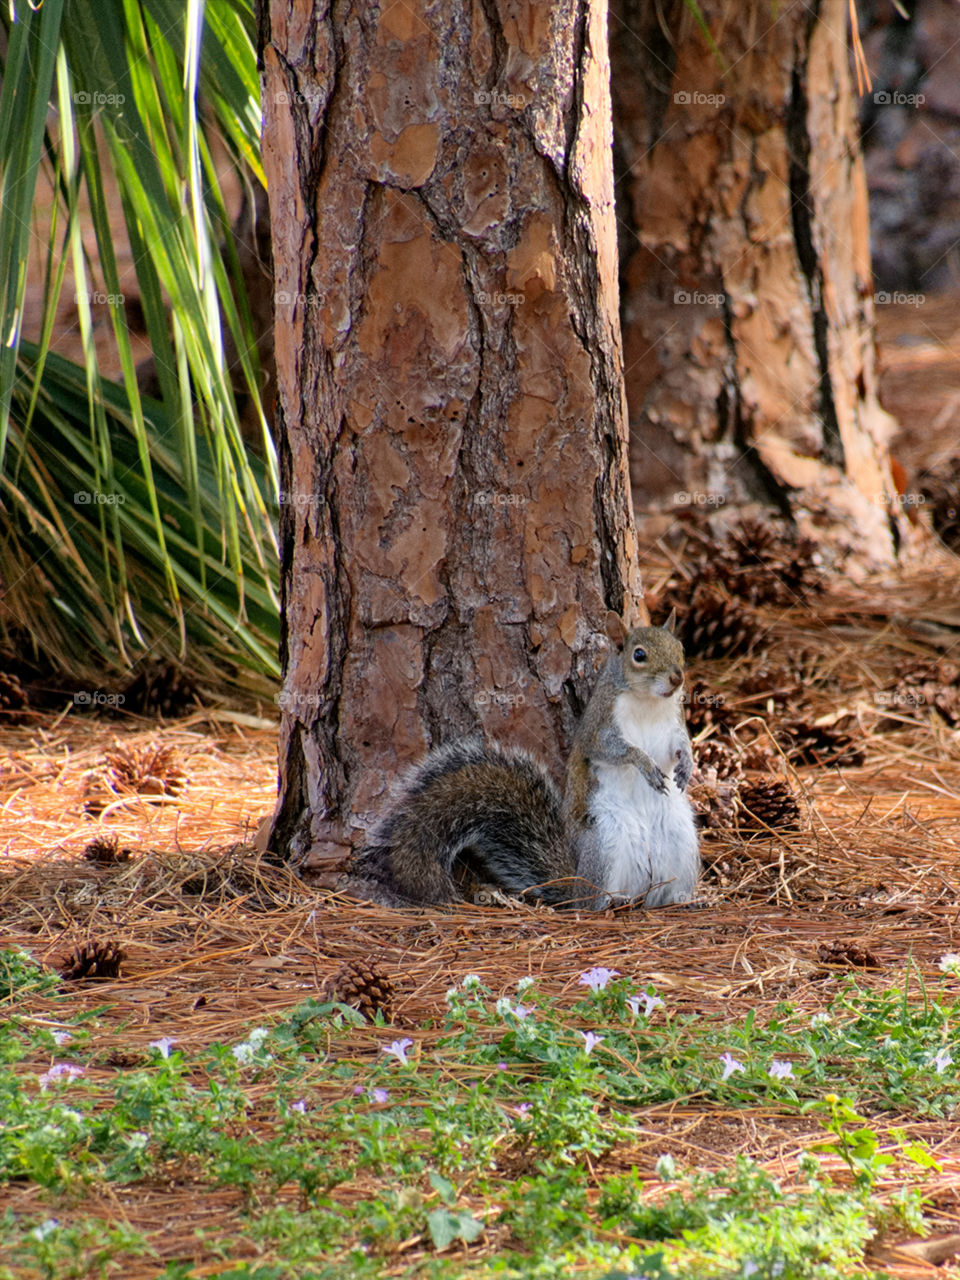 Upright. Grey squirrel standing upright at base of tree